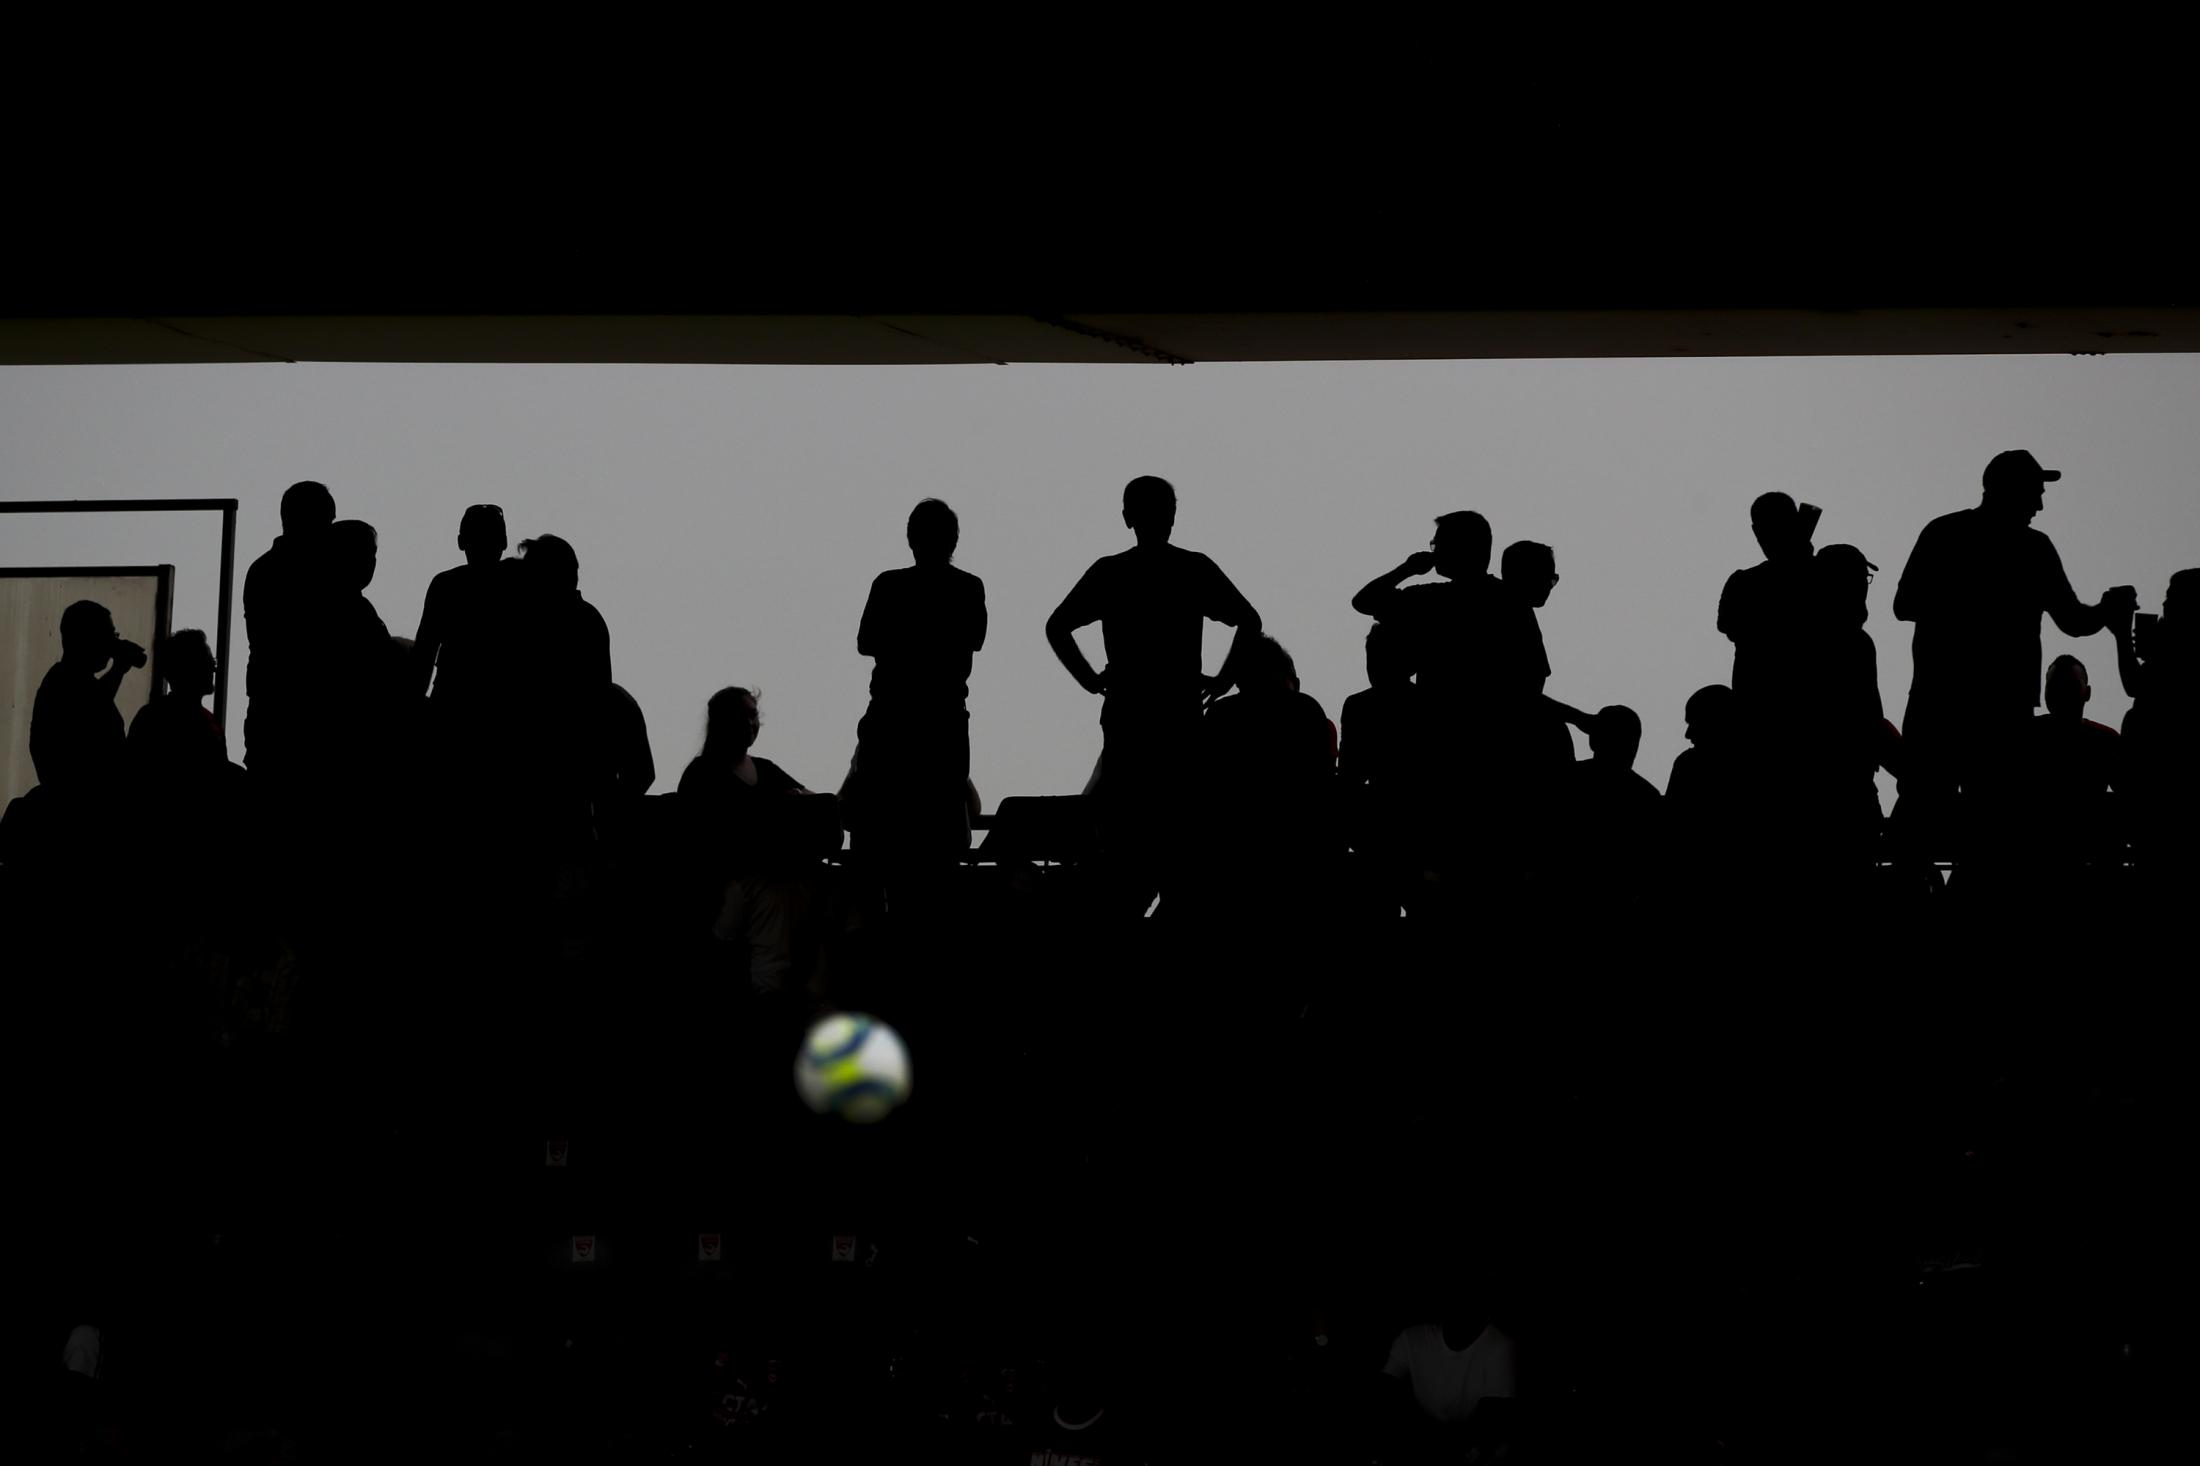 Nimes fans fill the stands before the start of the French League One soccer match between Nimes and Brest at the Stade des Costières in Nimes, southern France, Saturday, Aug. 31, 2019. (AP Photo/Daniel Cole)